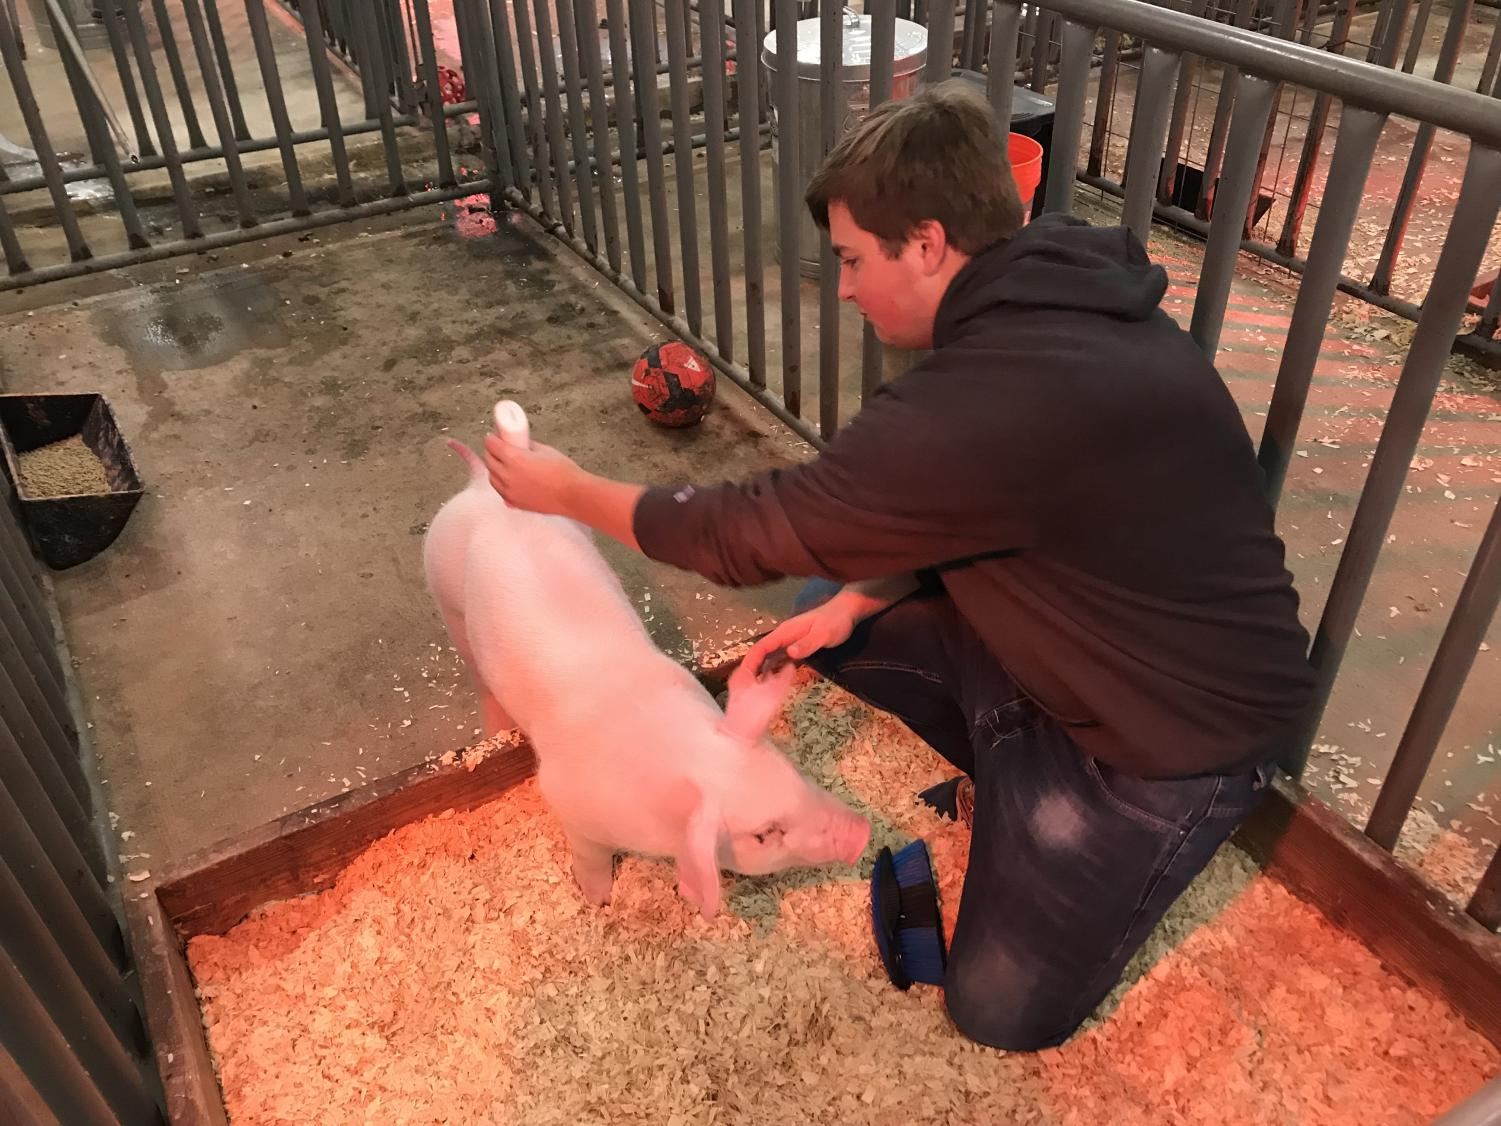 Brandon Herzog has gained his pig, Jolene's trust over the past two months and is making preparations for their next competition on February 8th.